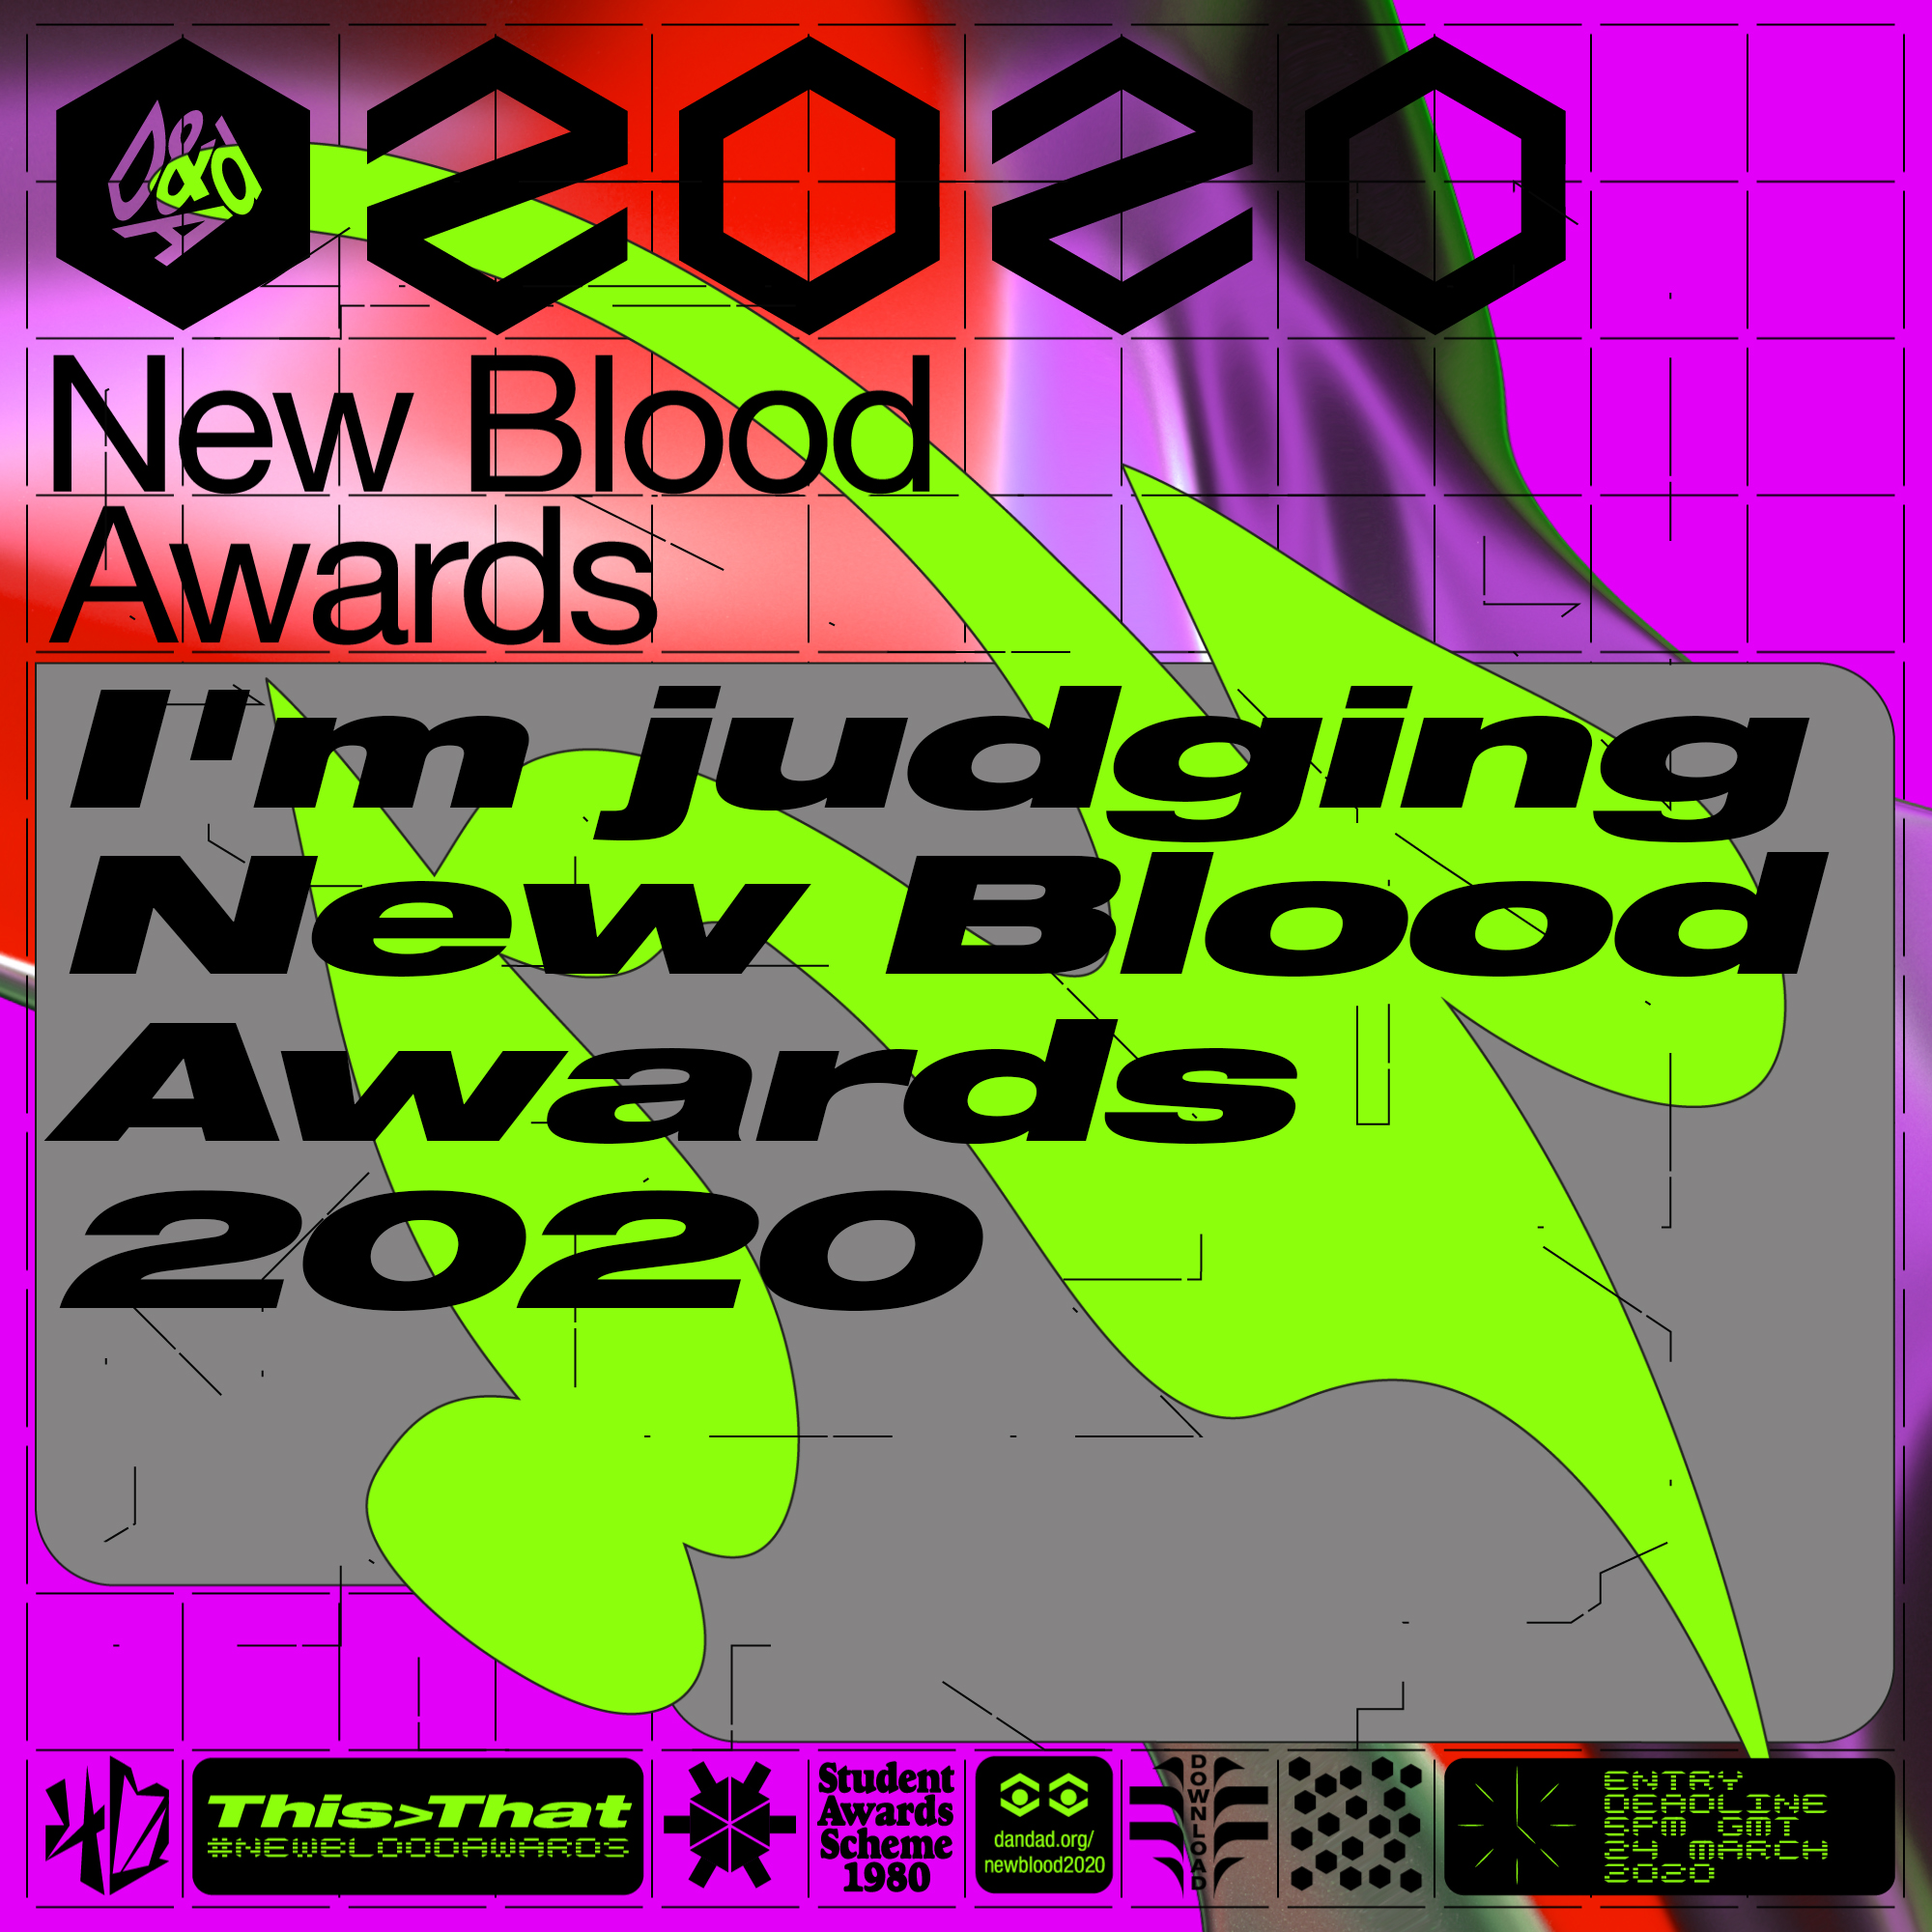 I'm judging New Blood Awards 2020